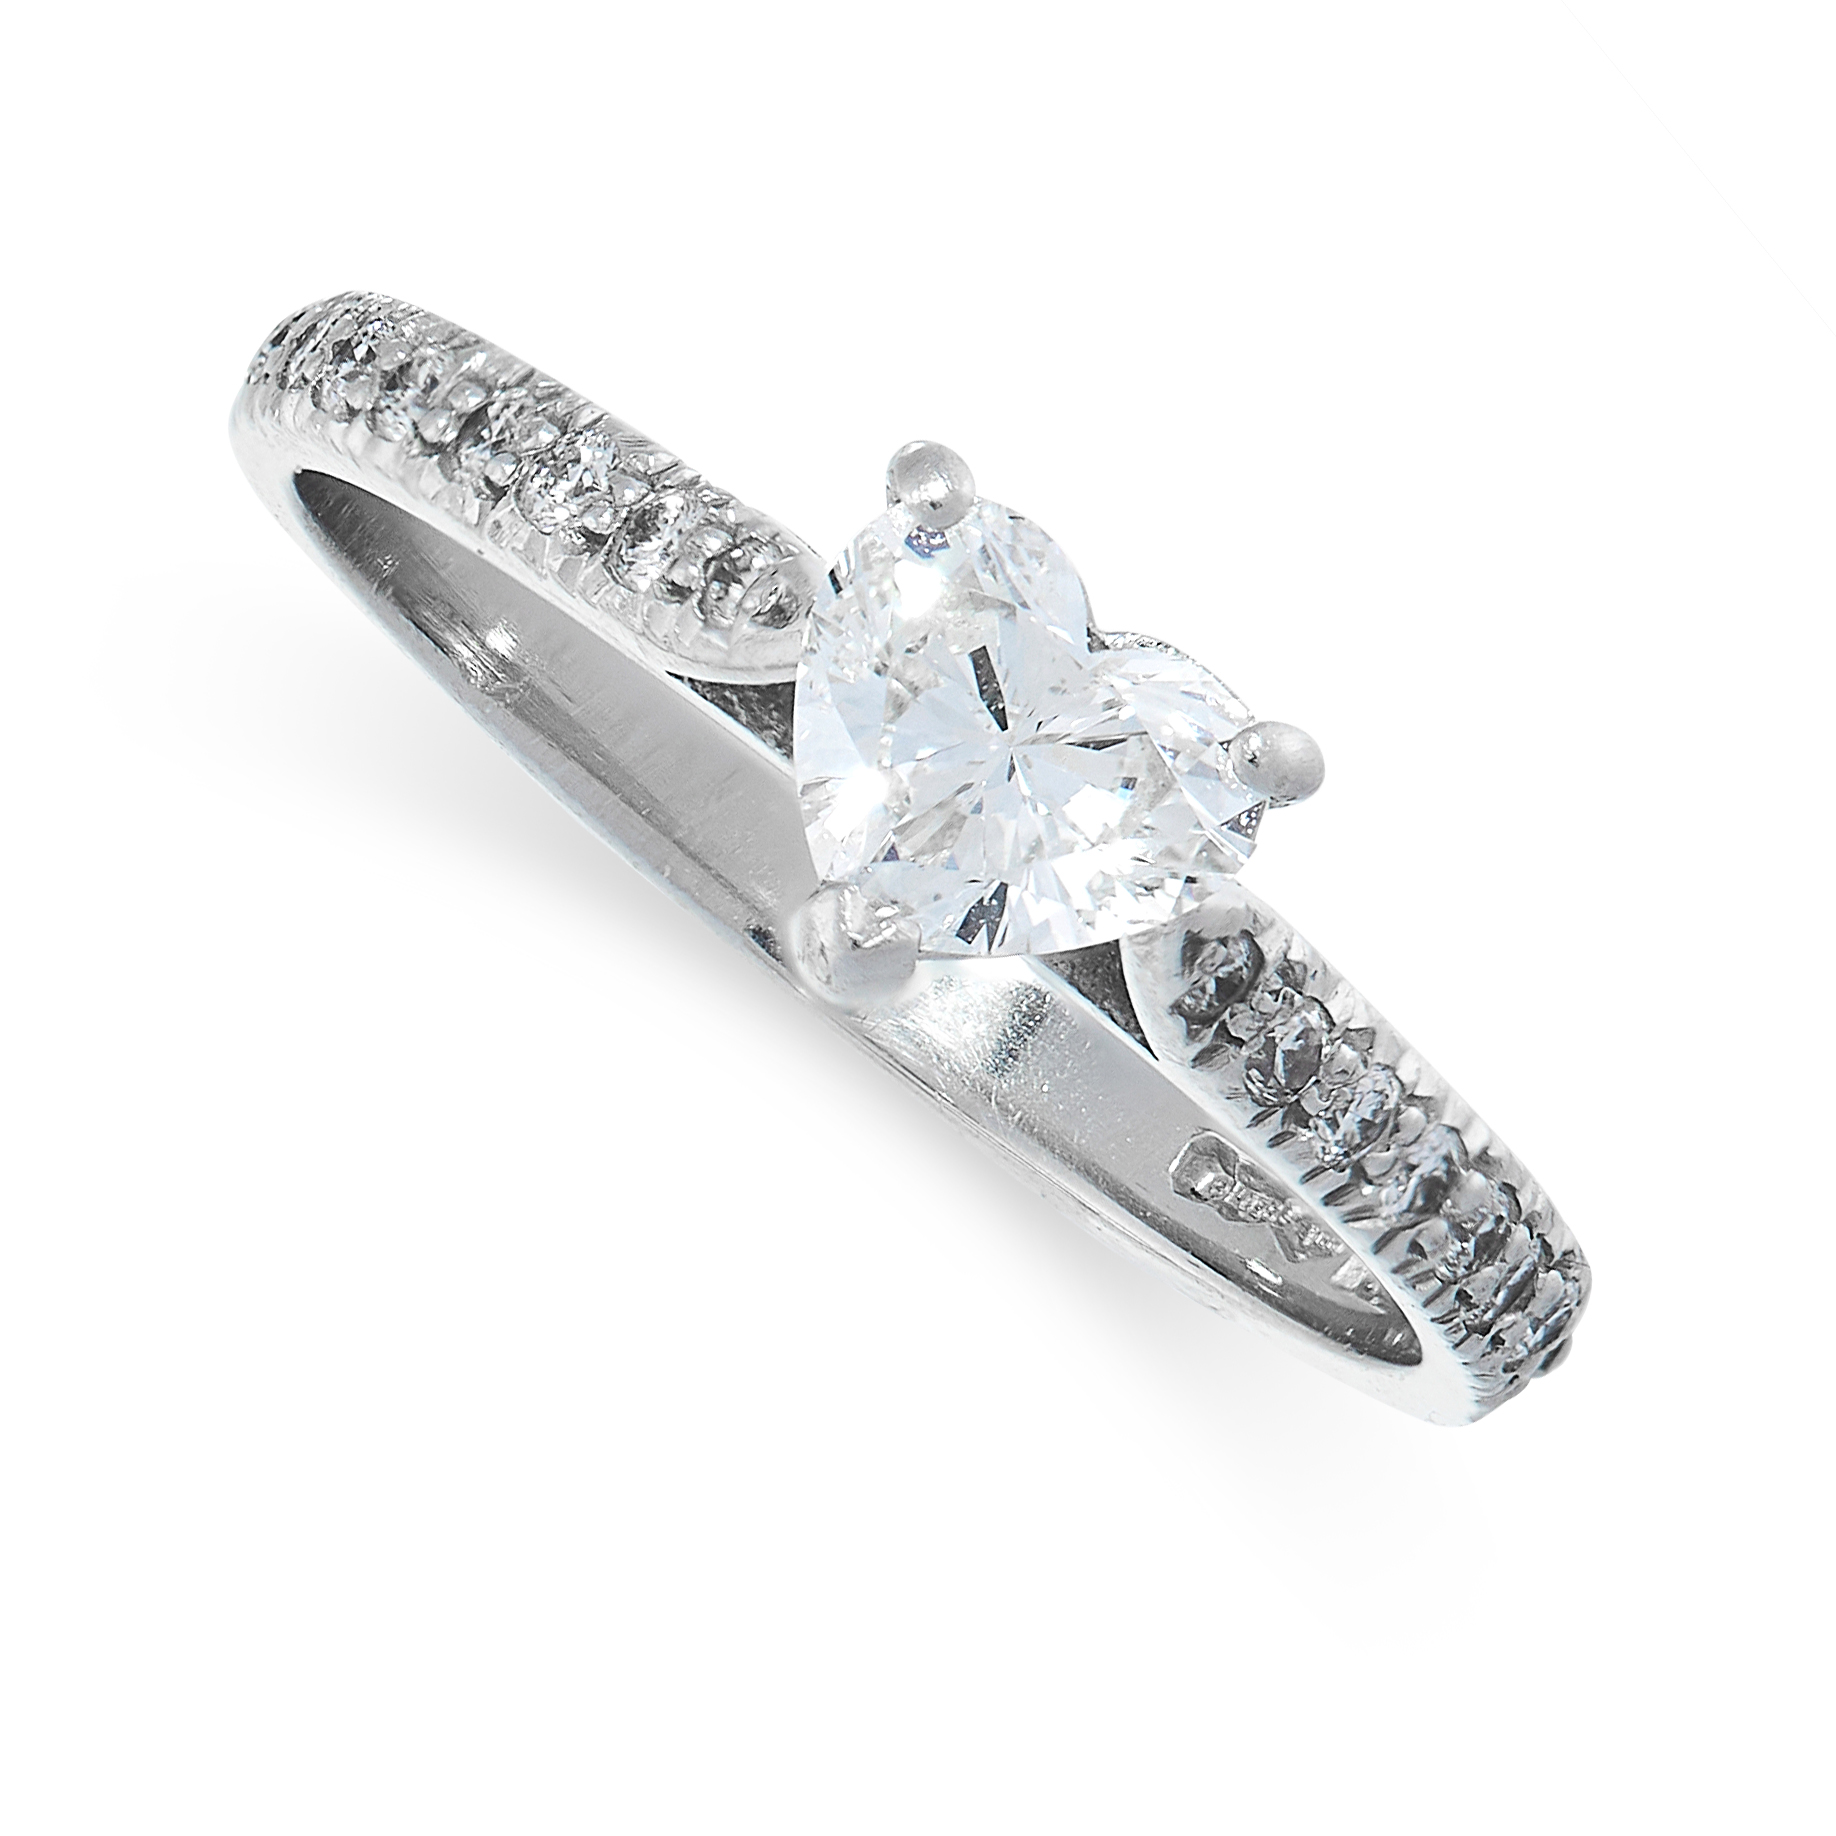 DIAMOND RING comprising of a heart cut diamond of 0.43 carats with round cut diamonds to the